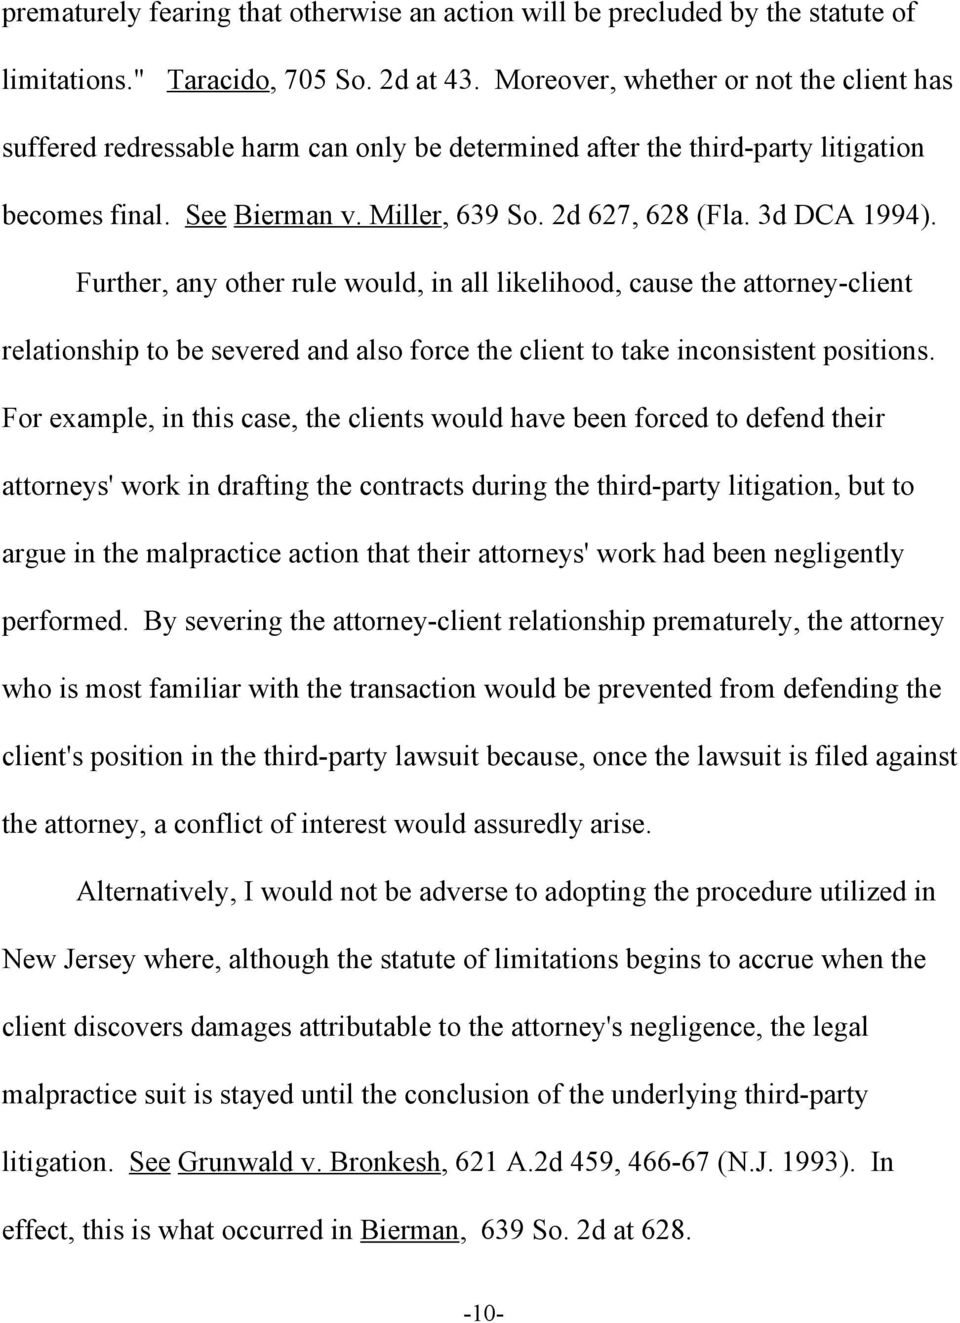 Further, any other rule would, in all likelihood, cause the attorney-client relationship to be severed and also force the client to take inconsistent positions.